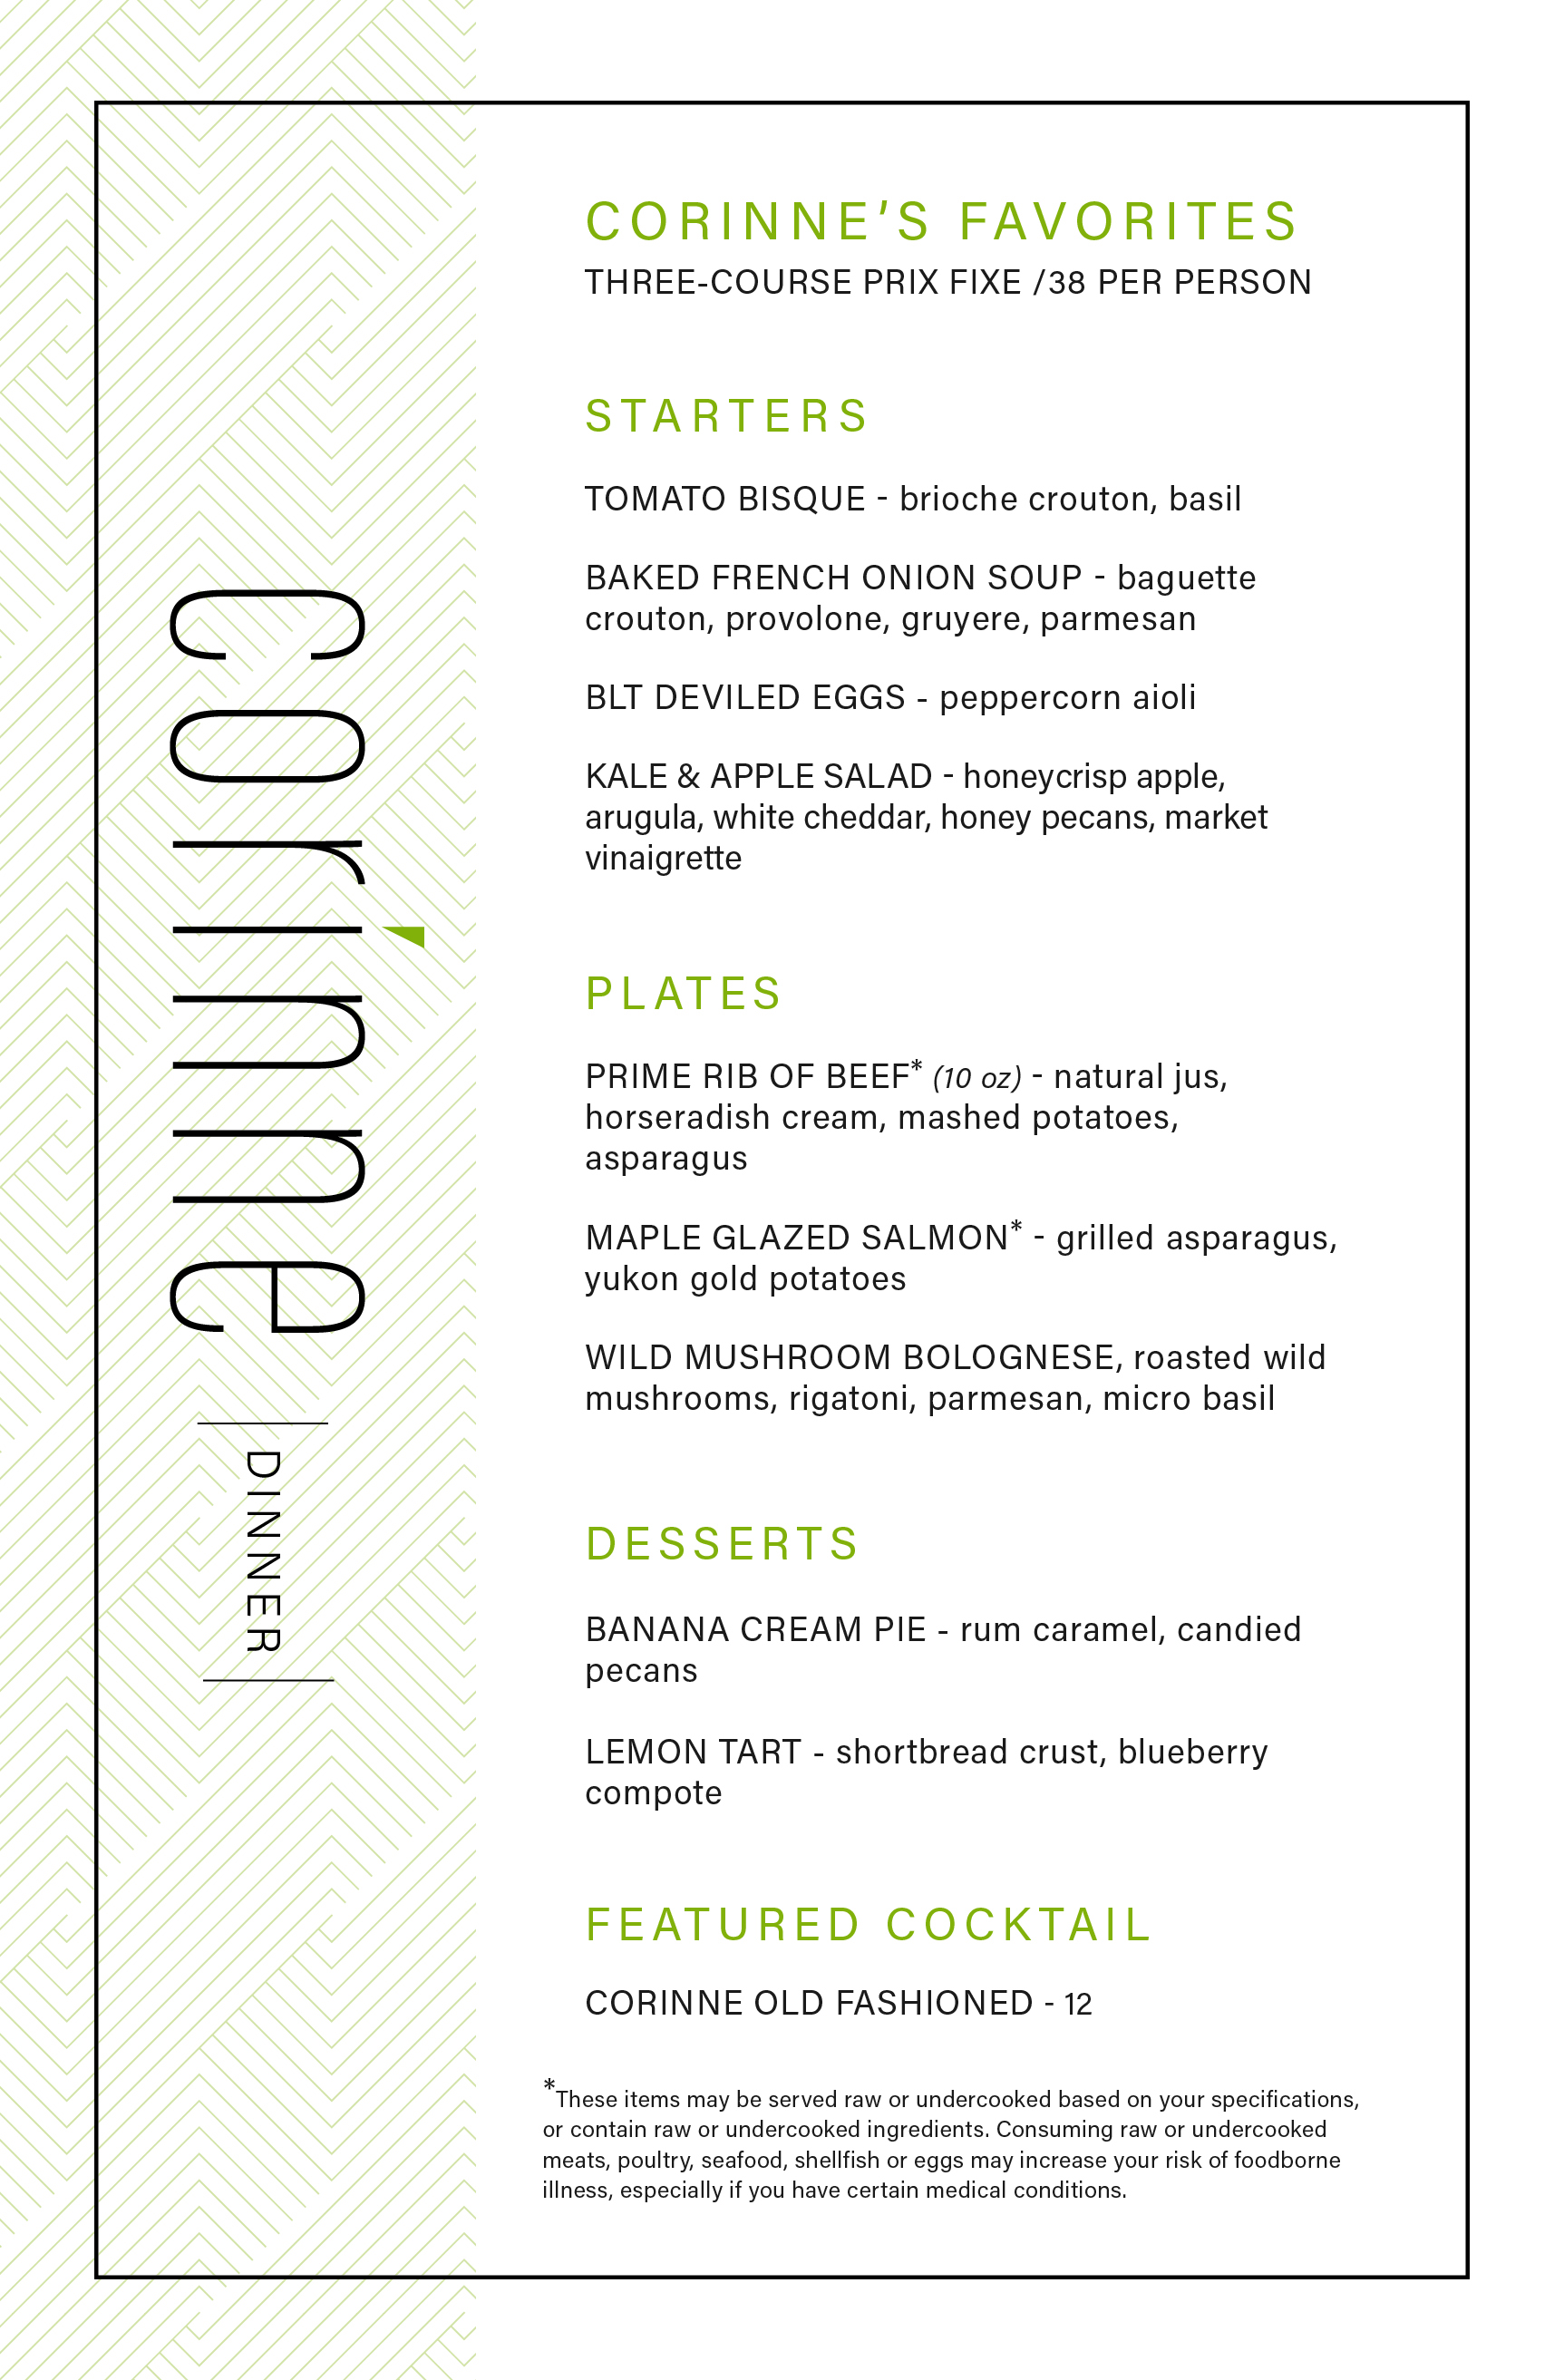 013416_WL_Corinne Favorites Menu 5.5x8.5.jpg